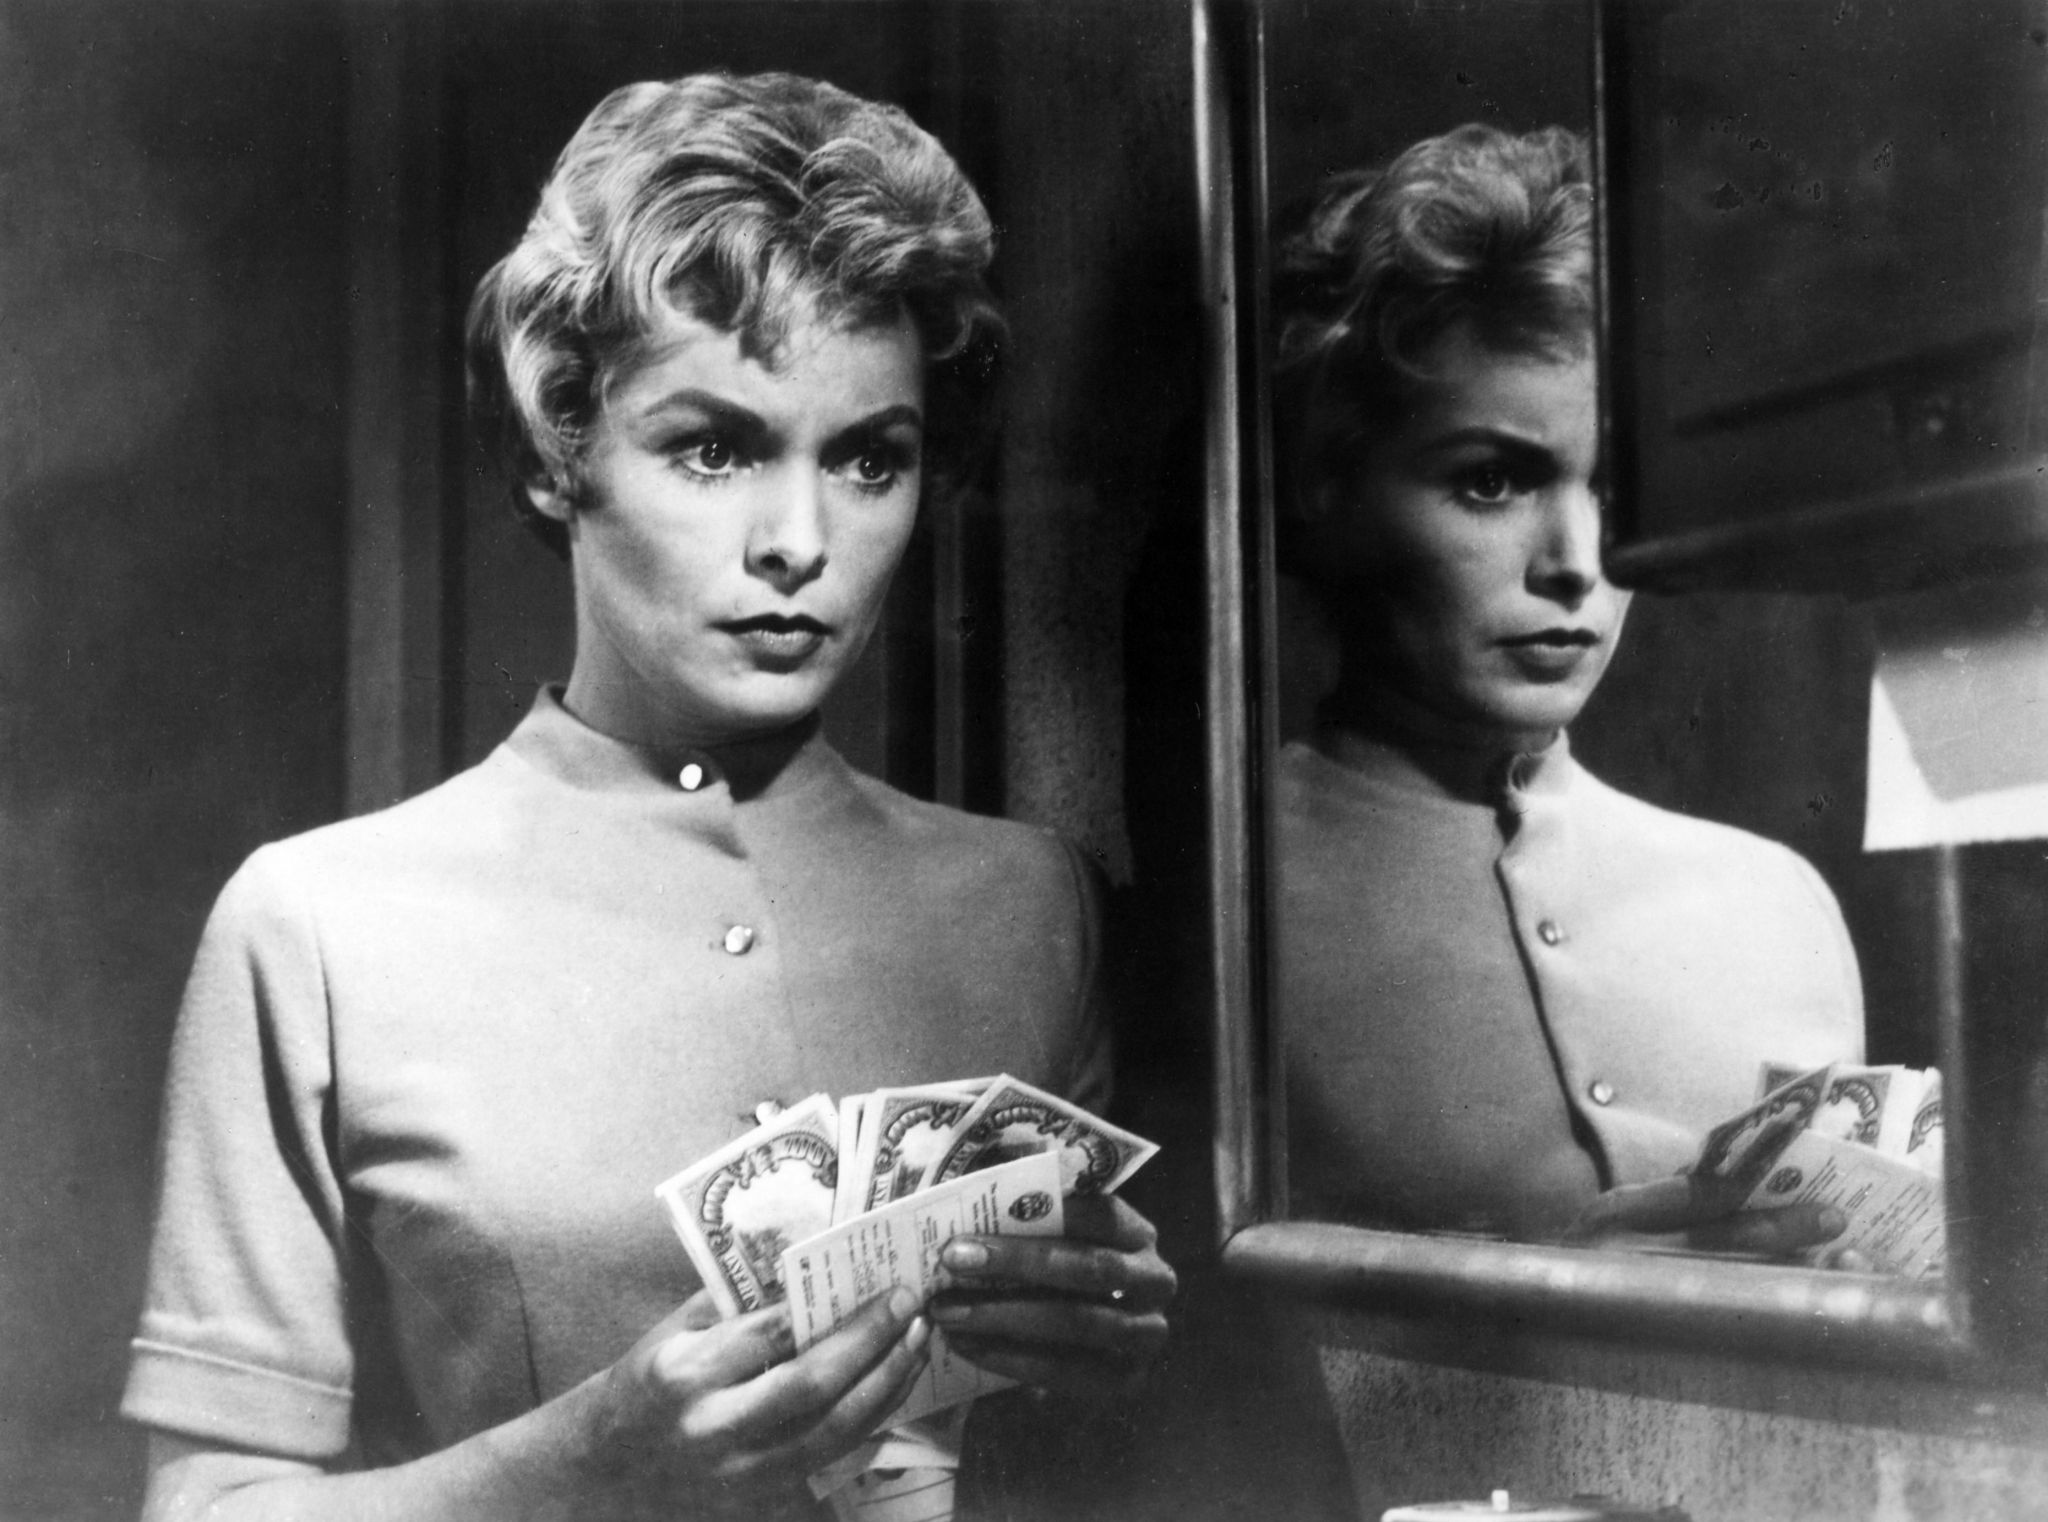 'It is a real shocker': How the Chronicle originally reviewed 'Psycho'